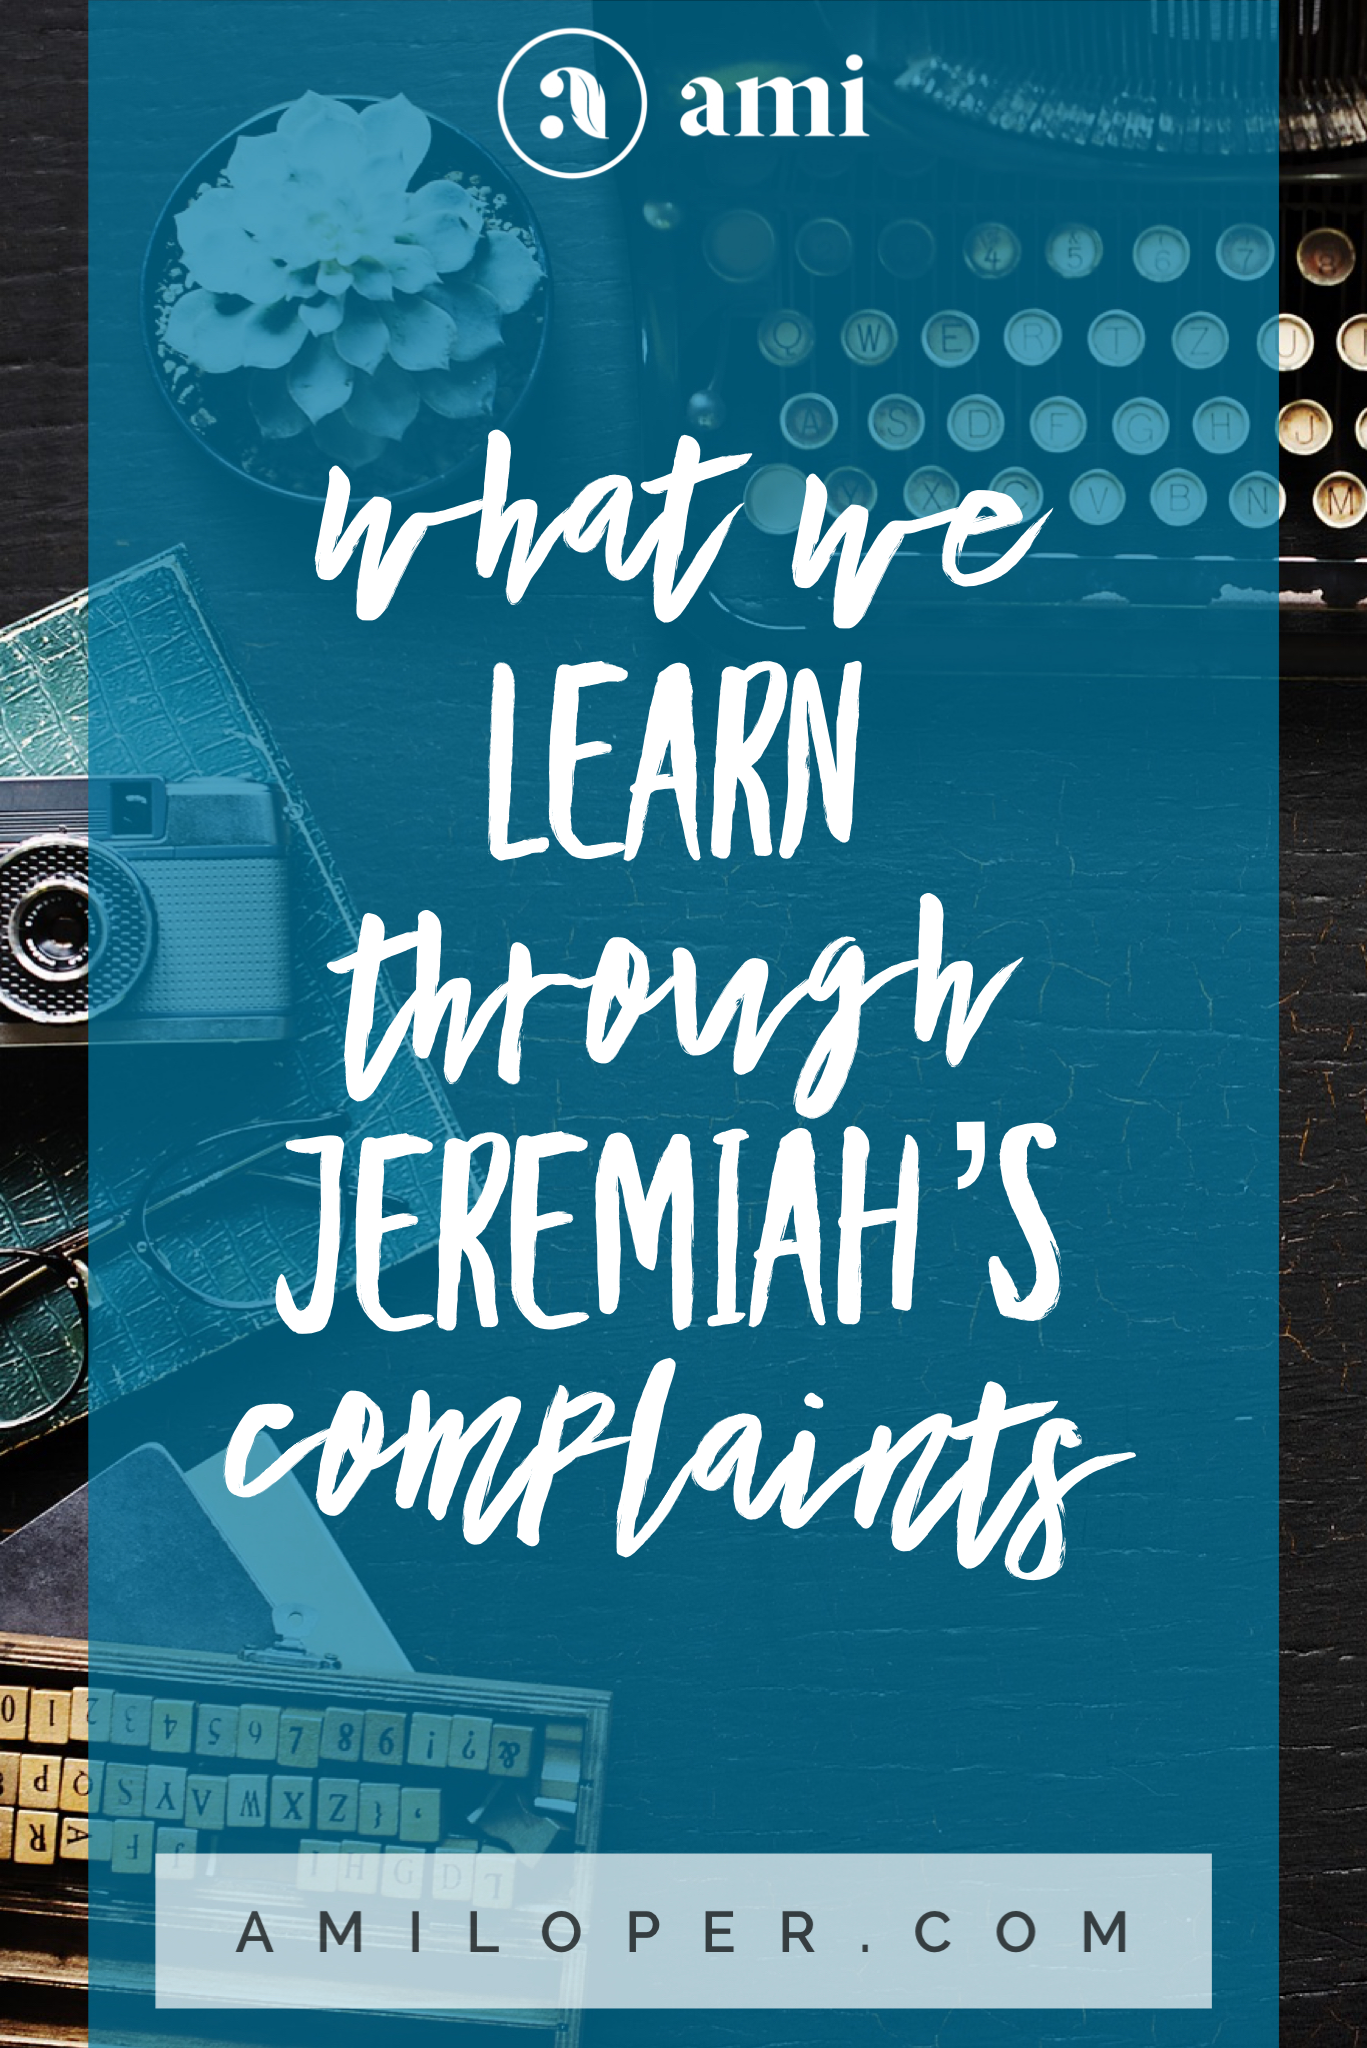 """With all my deep feelings, I relate well to Jeremiah, the Old Testament prophet who is often saddled with the moniker, """"The Weeping Prophet."""" Here's what I've learned by studying his six pain-filled and personal complaints. # Prayer #FeelingHopeless #Encouragement"""